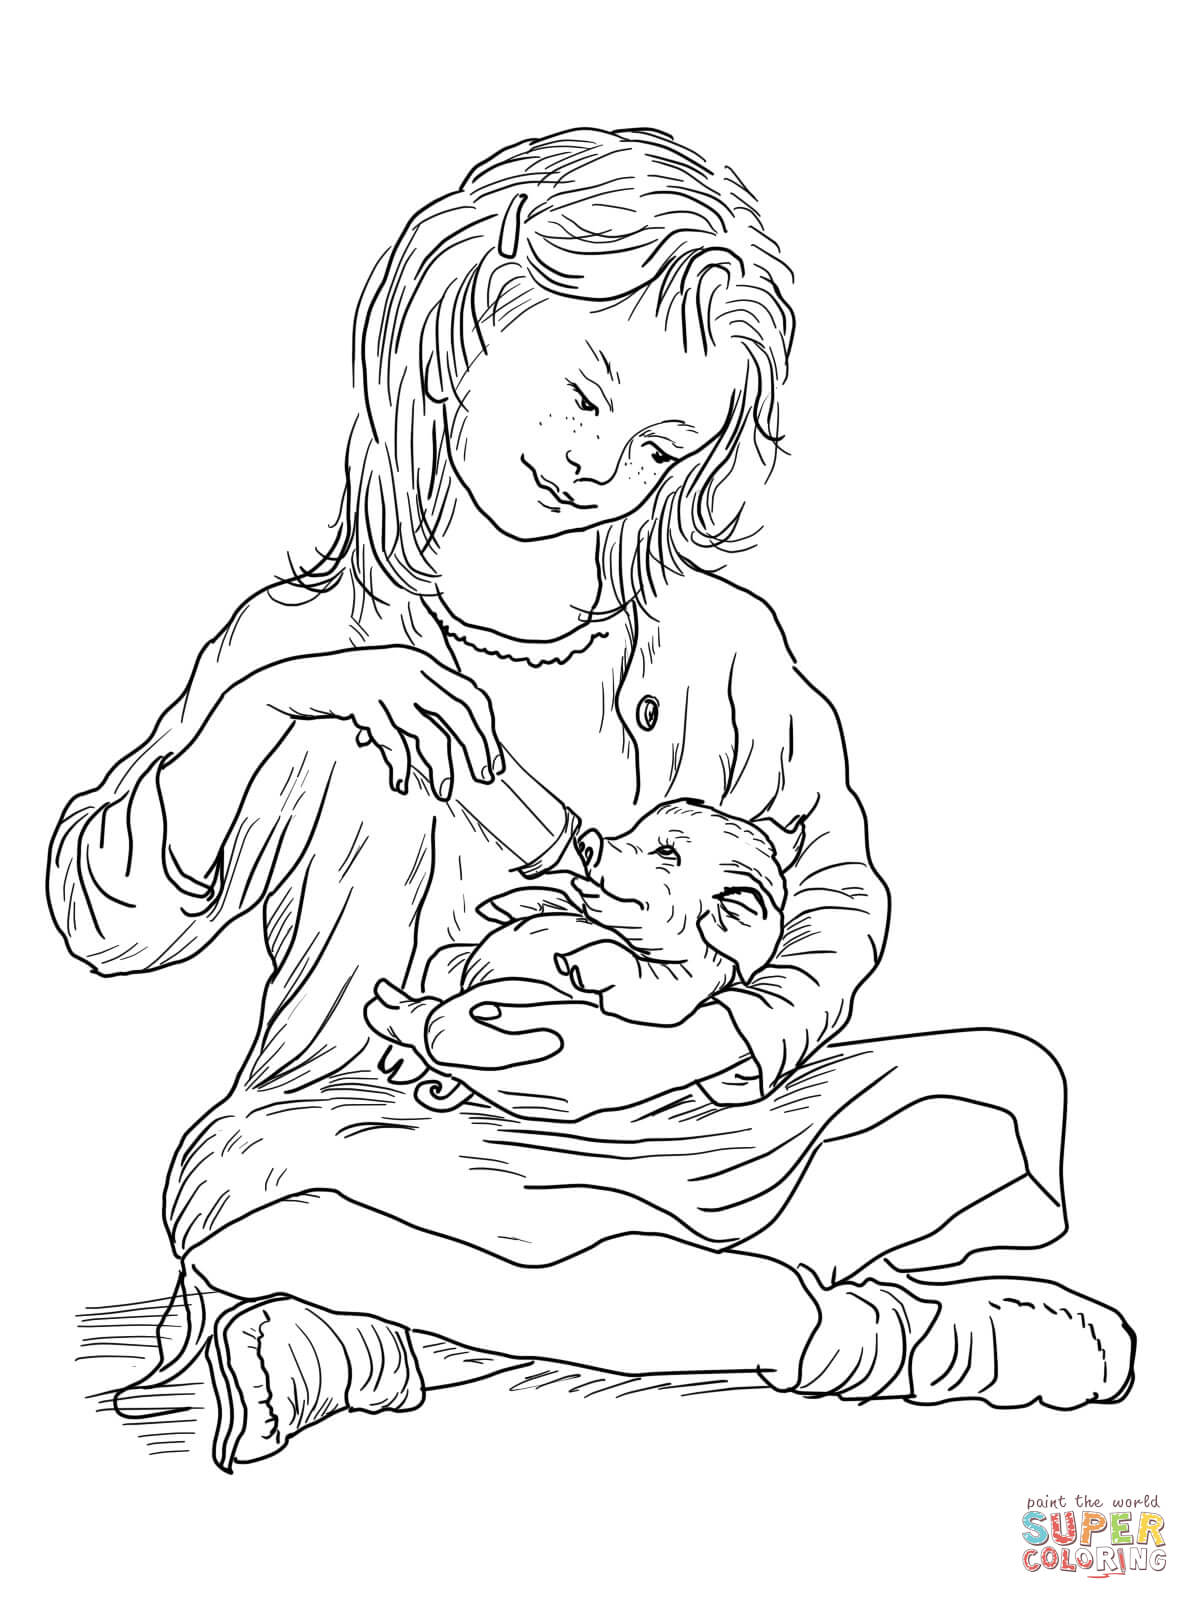 Charlotte's Web Coloring Page | Free Printable Coloring ...